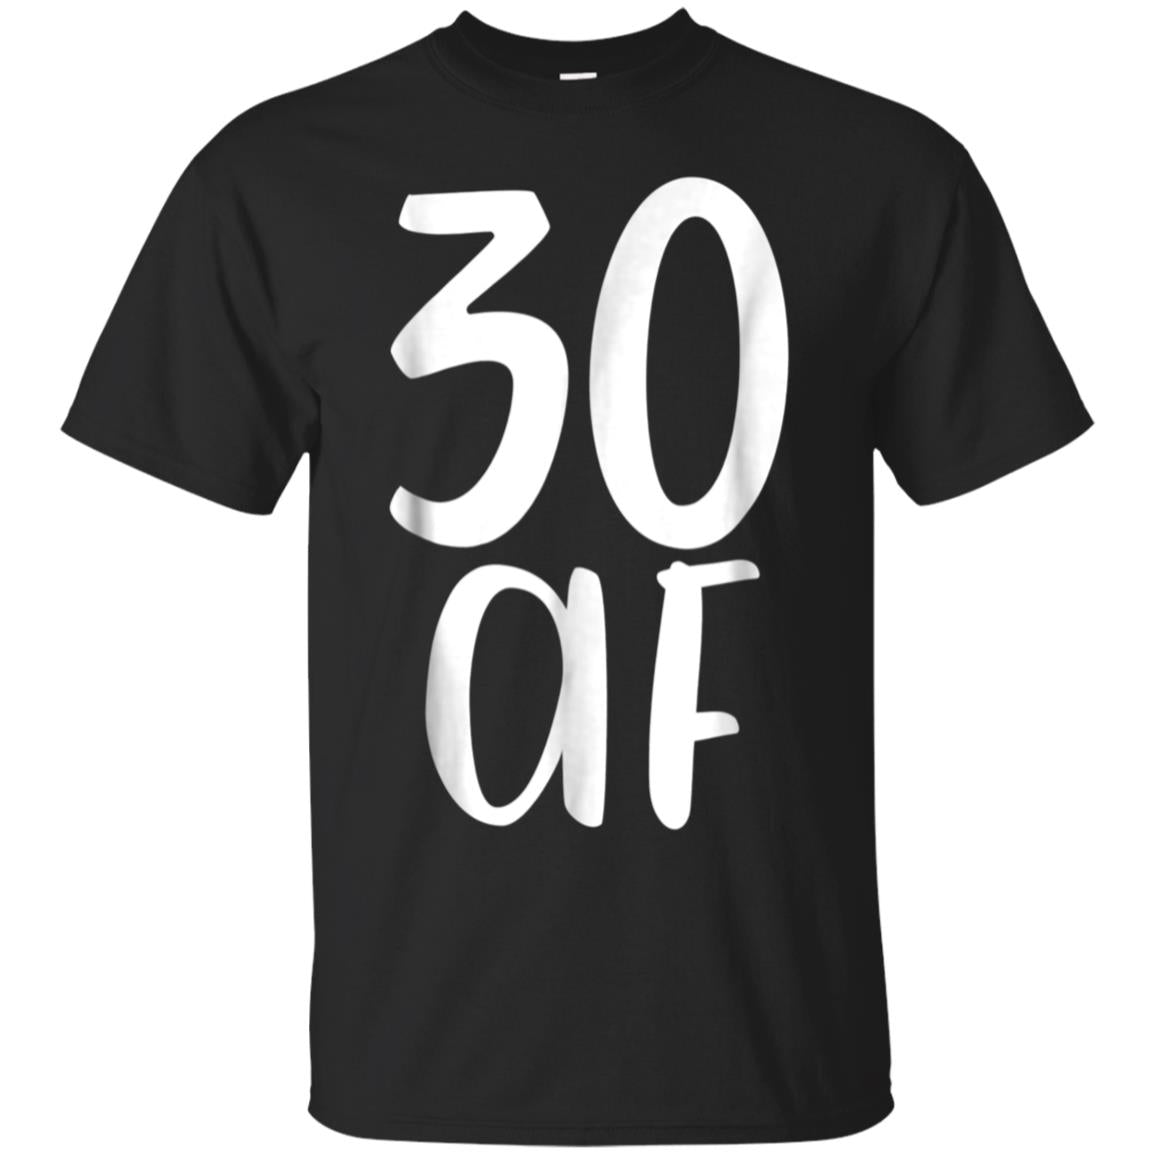 8542b1c5 Awesome 30 af fabulous funny tee shirt gift 30th birthday present ...